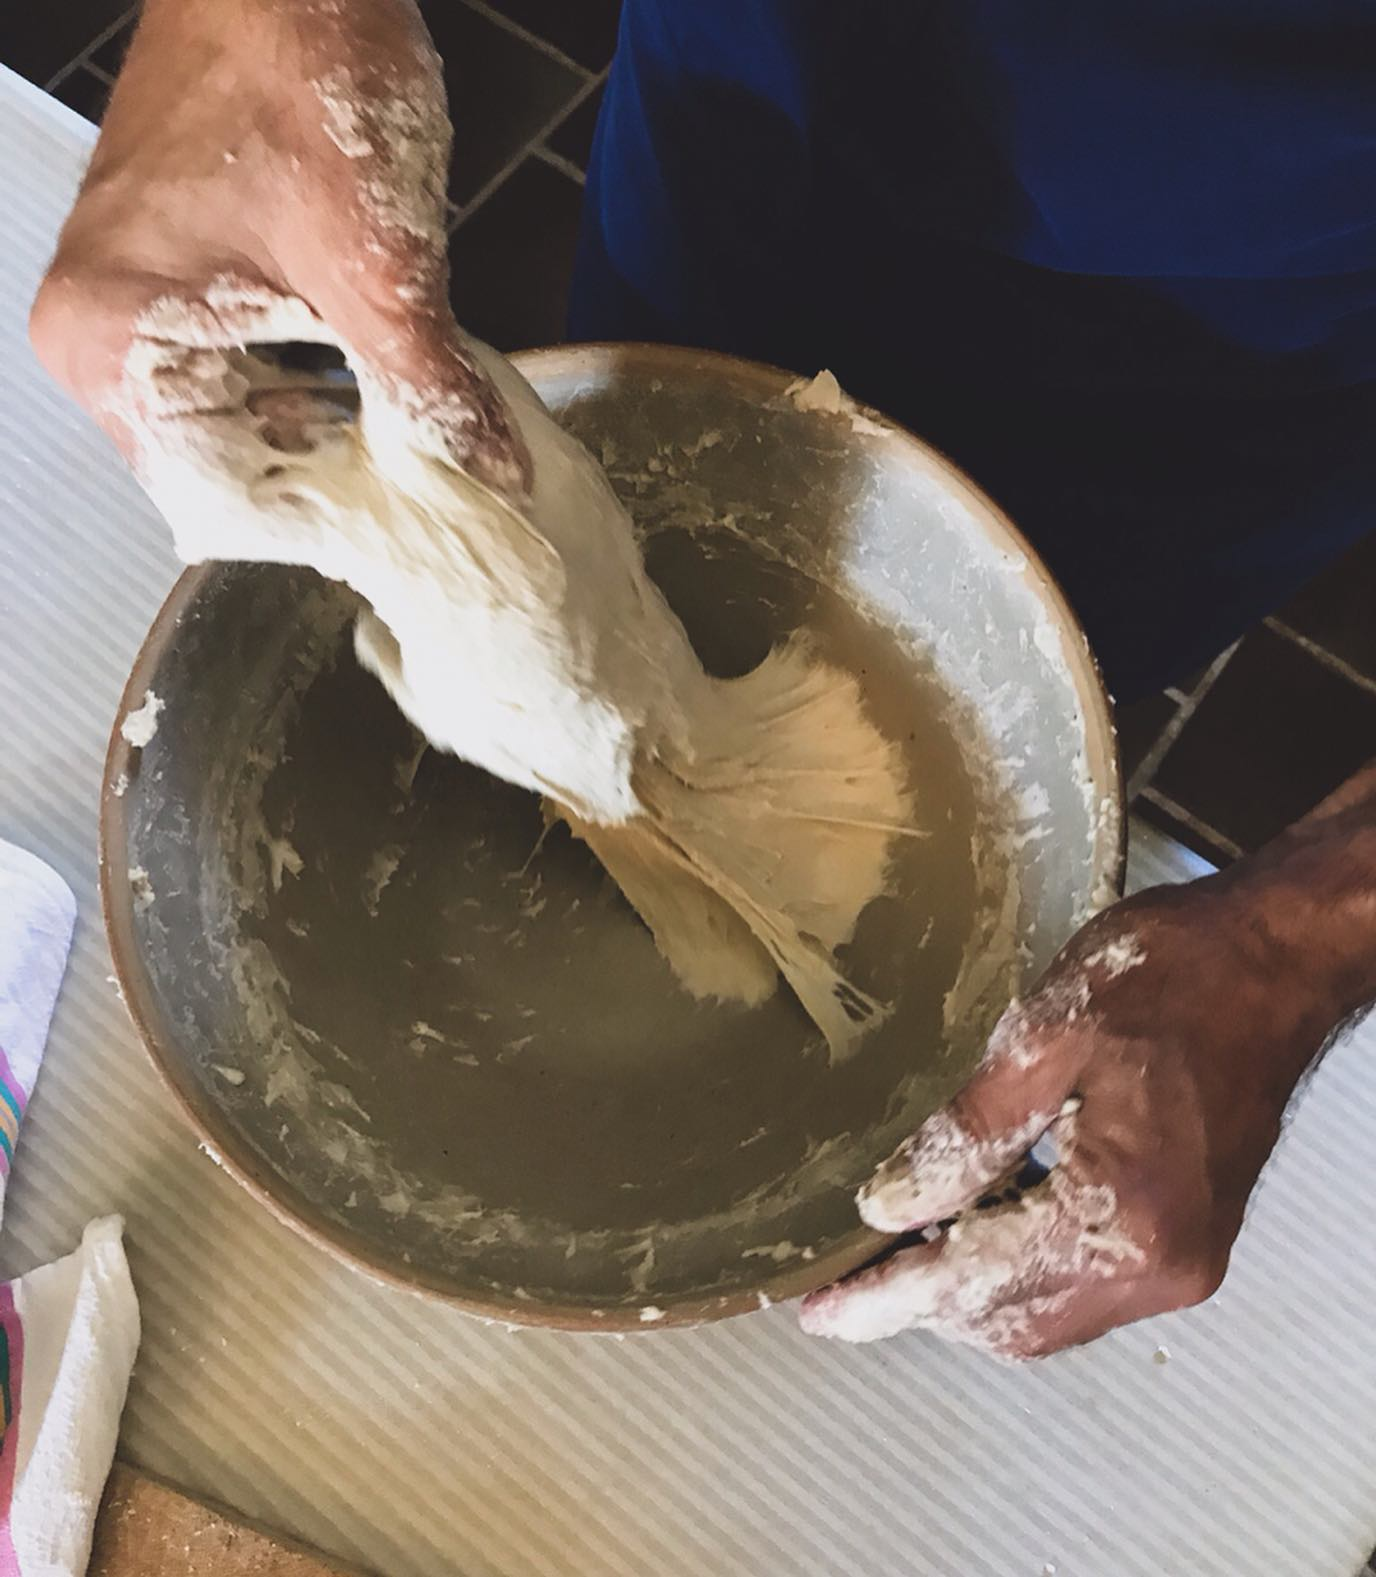 Another closeup of a man making a dough in a metal bowl